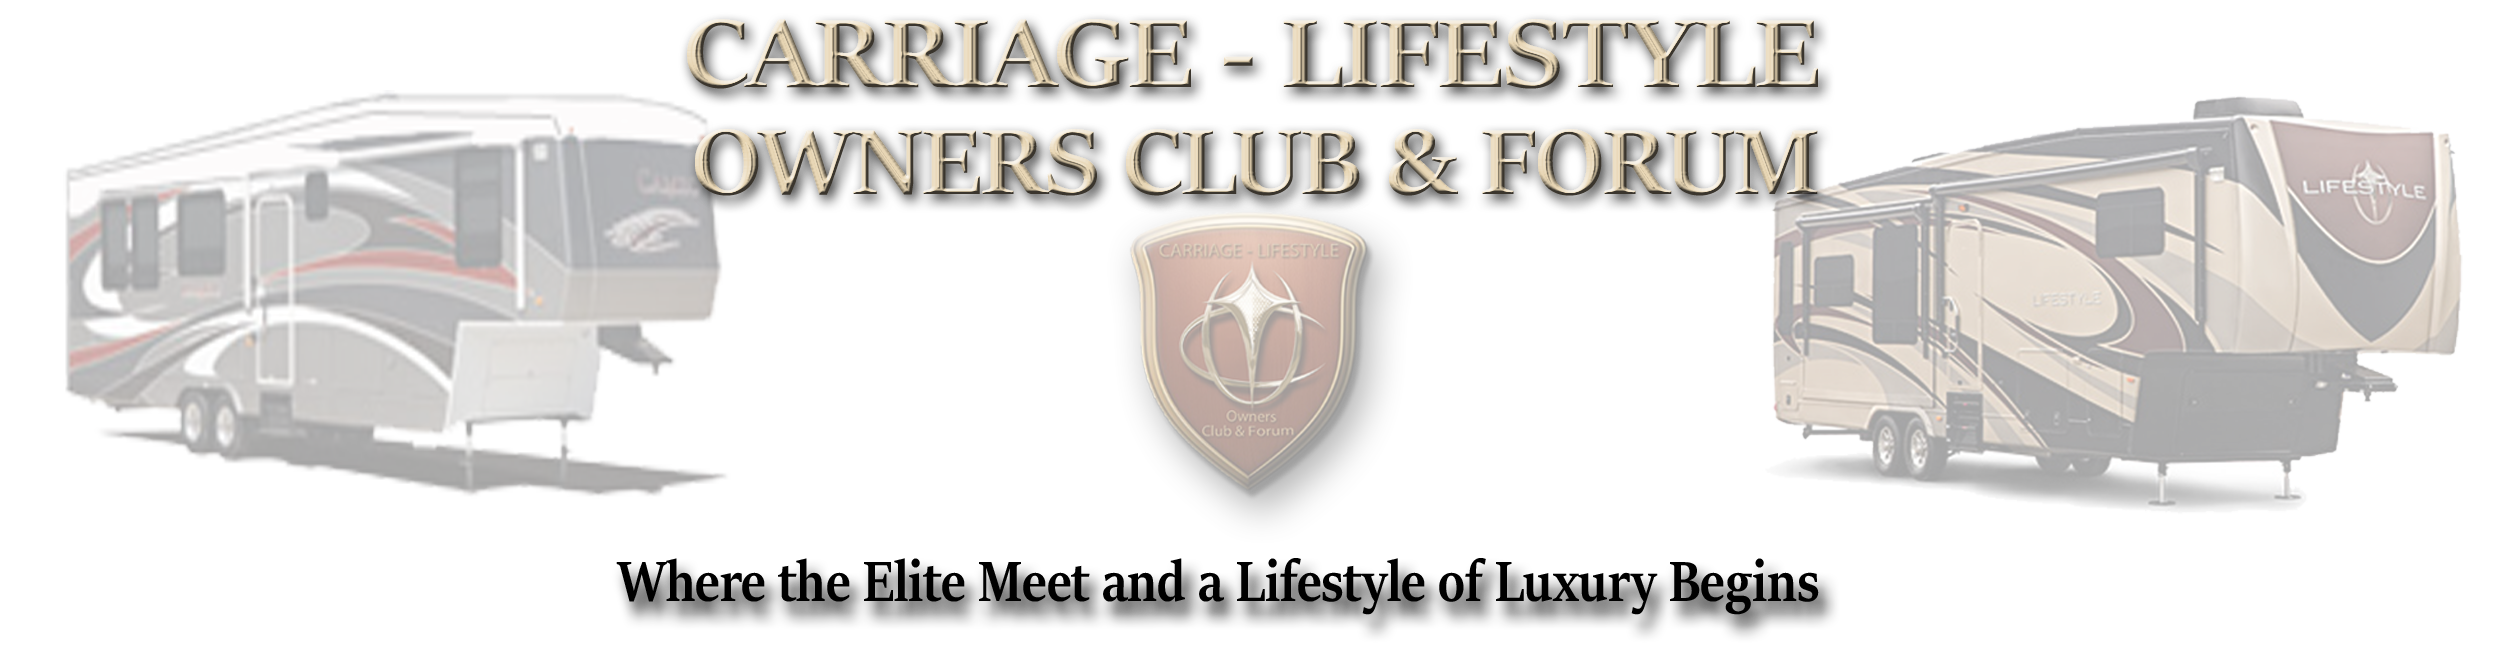 Carriage Lifestyle Rv Forum Amp Owners Club Carriage